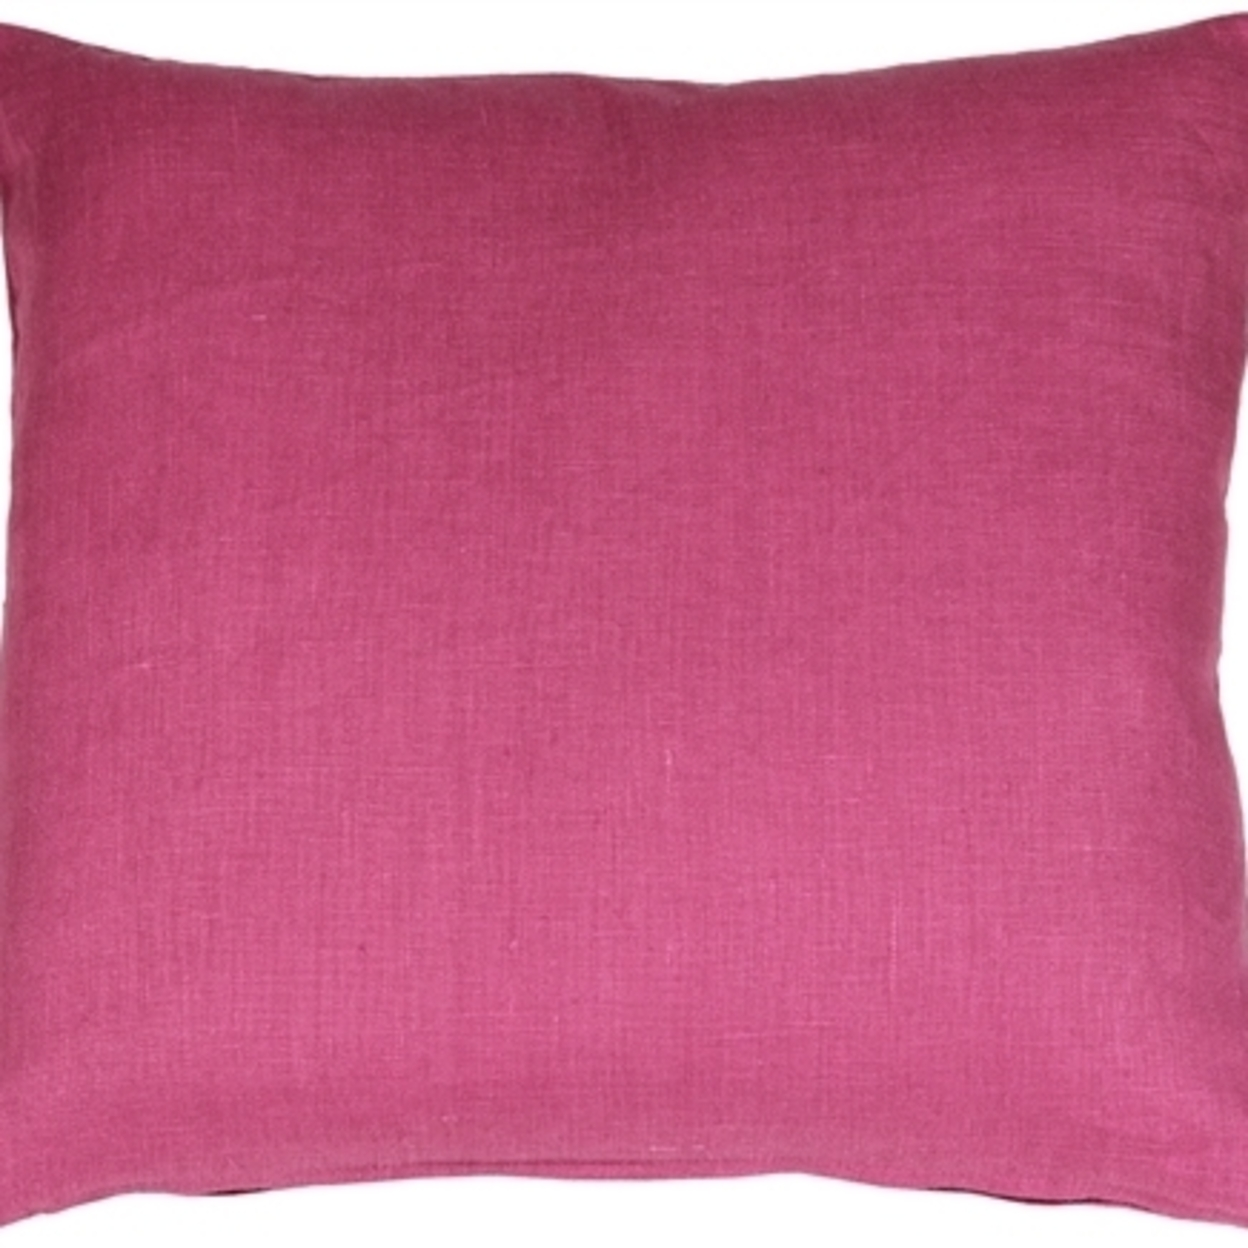 Pillow Decor Tuscany Linen Orchid Pink 17x17 Throw Pillow